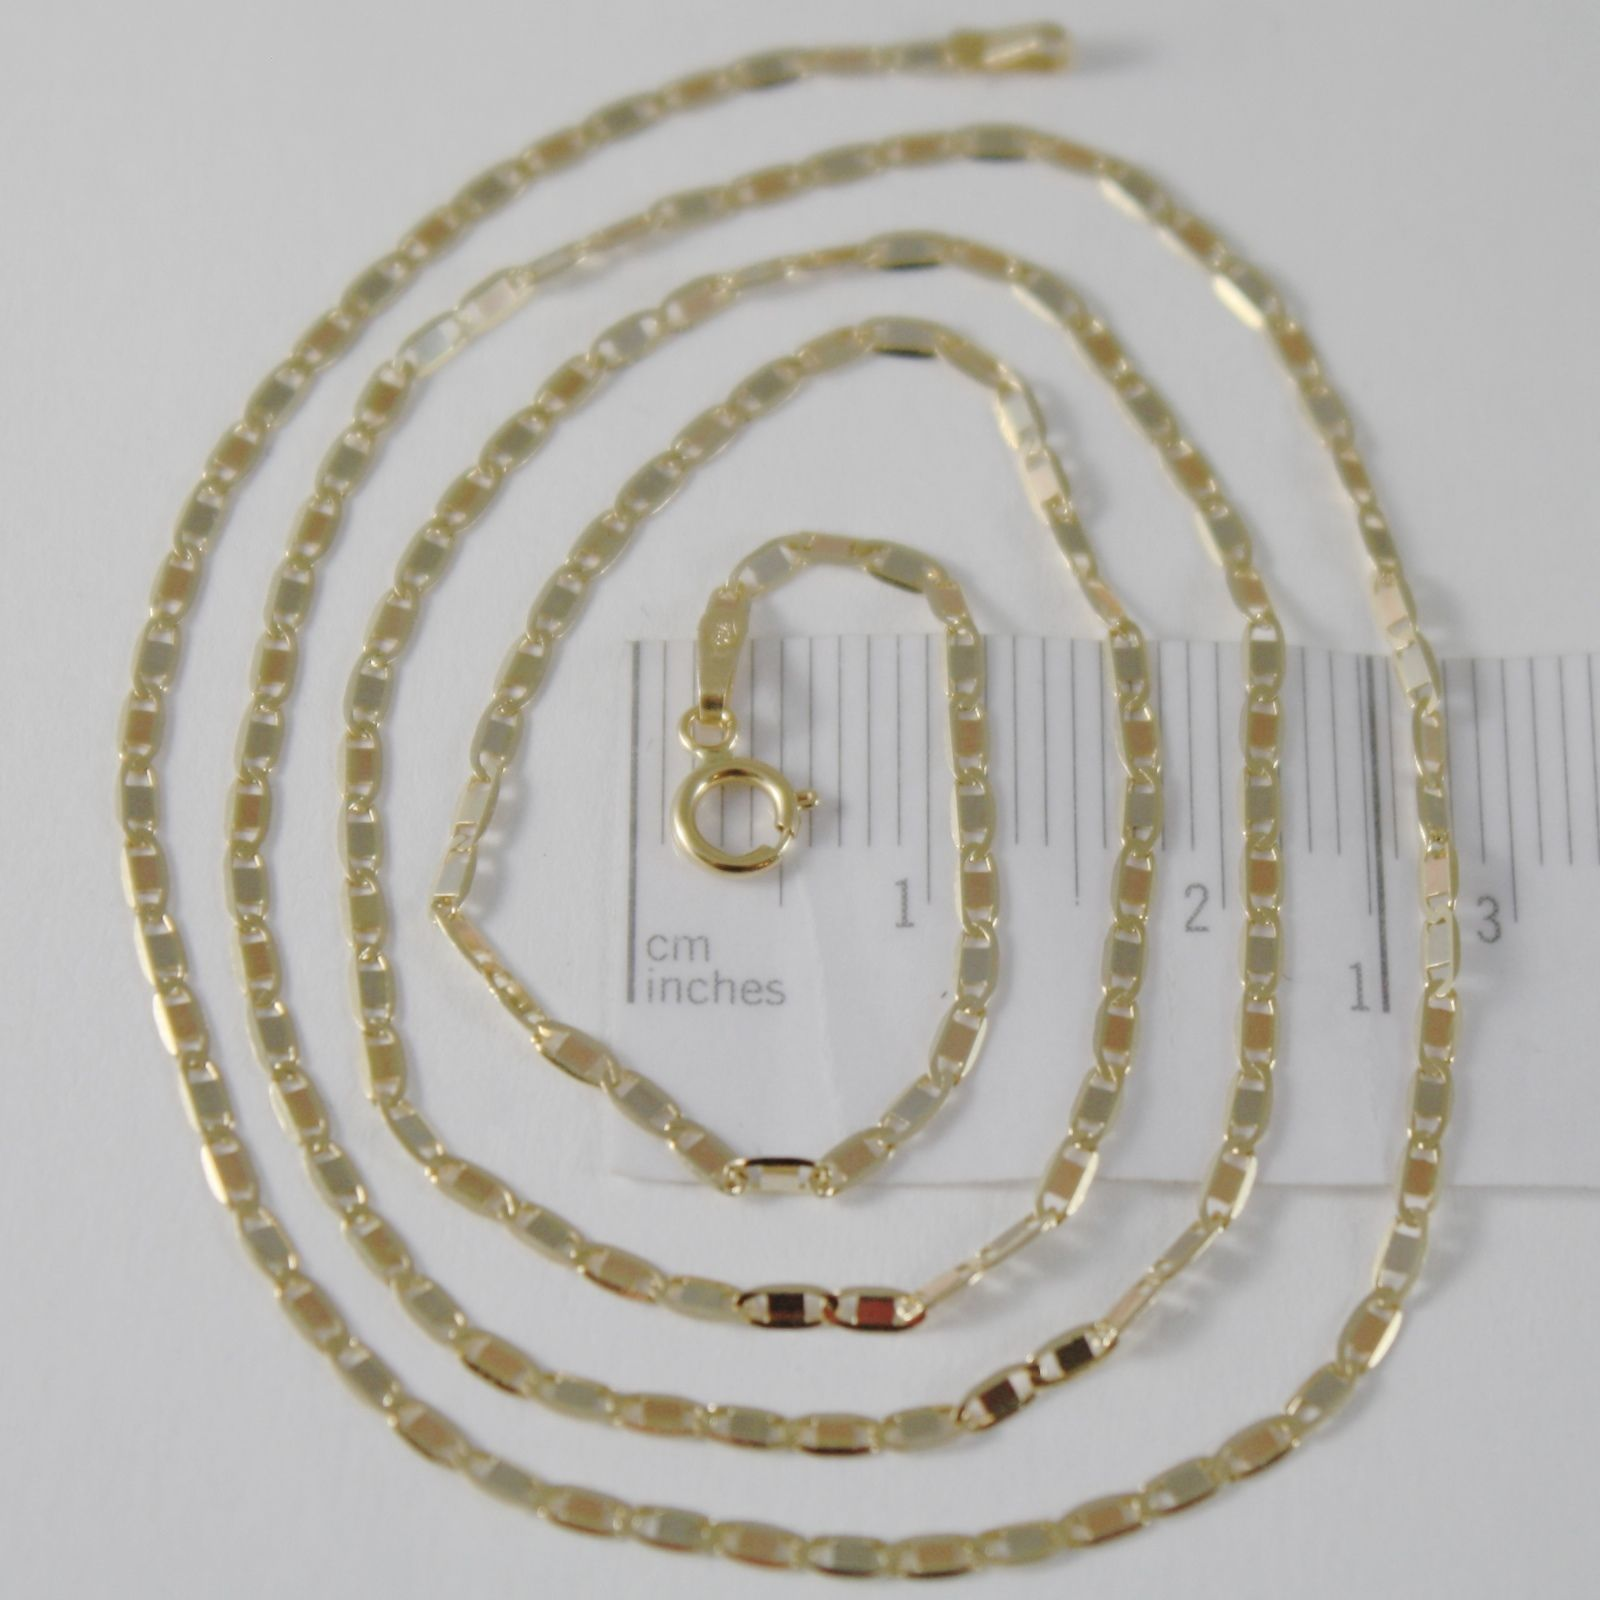 18K YELLOW WHITE ROSE GOLD FLAT BRIGHT OVAL CHAIN 20 INCHES, 2 MM MADE IN ITALY